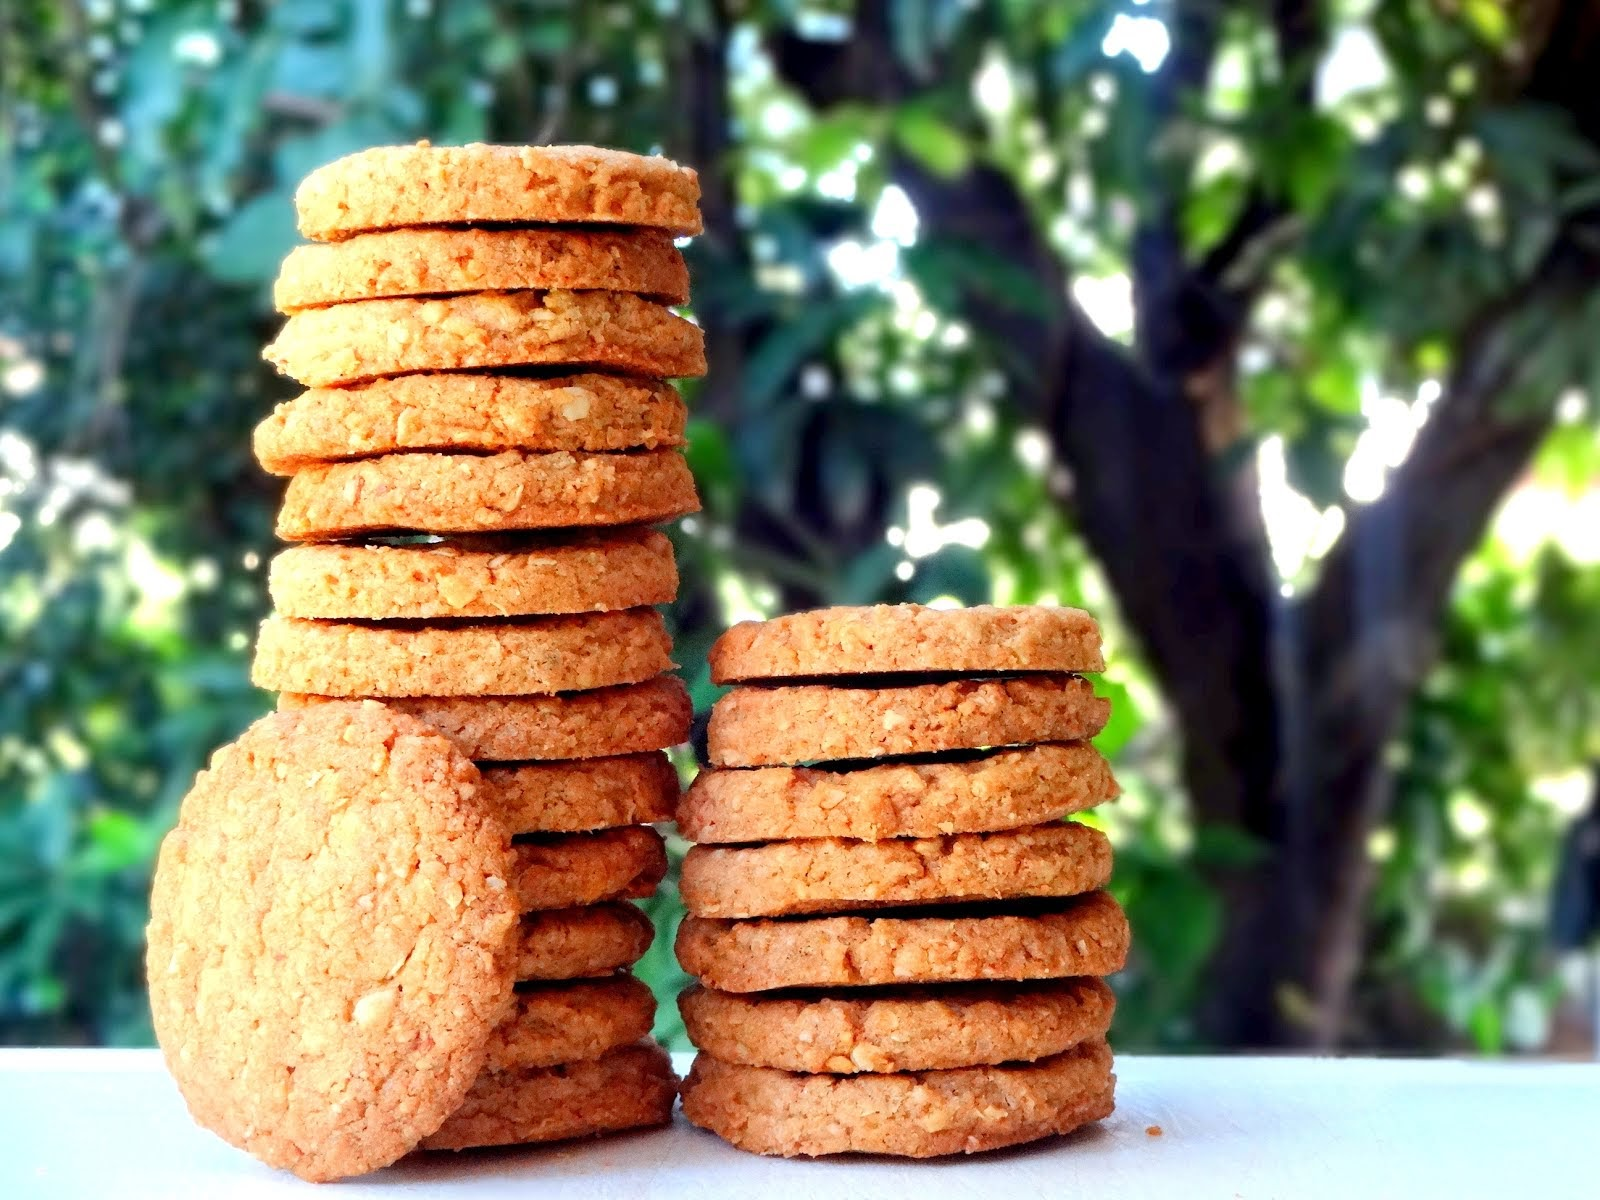 Whole Wheat Oat and Almond Cookies